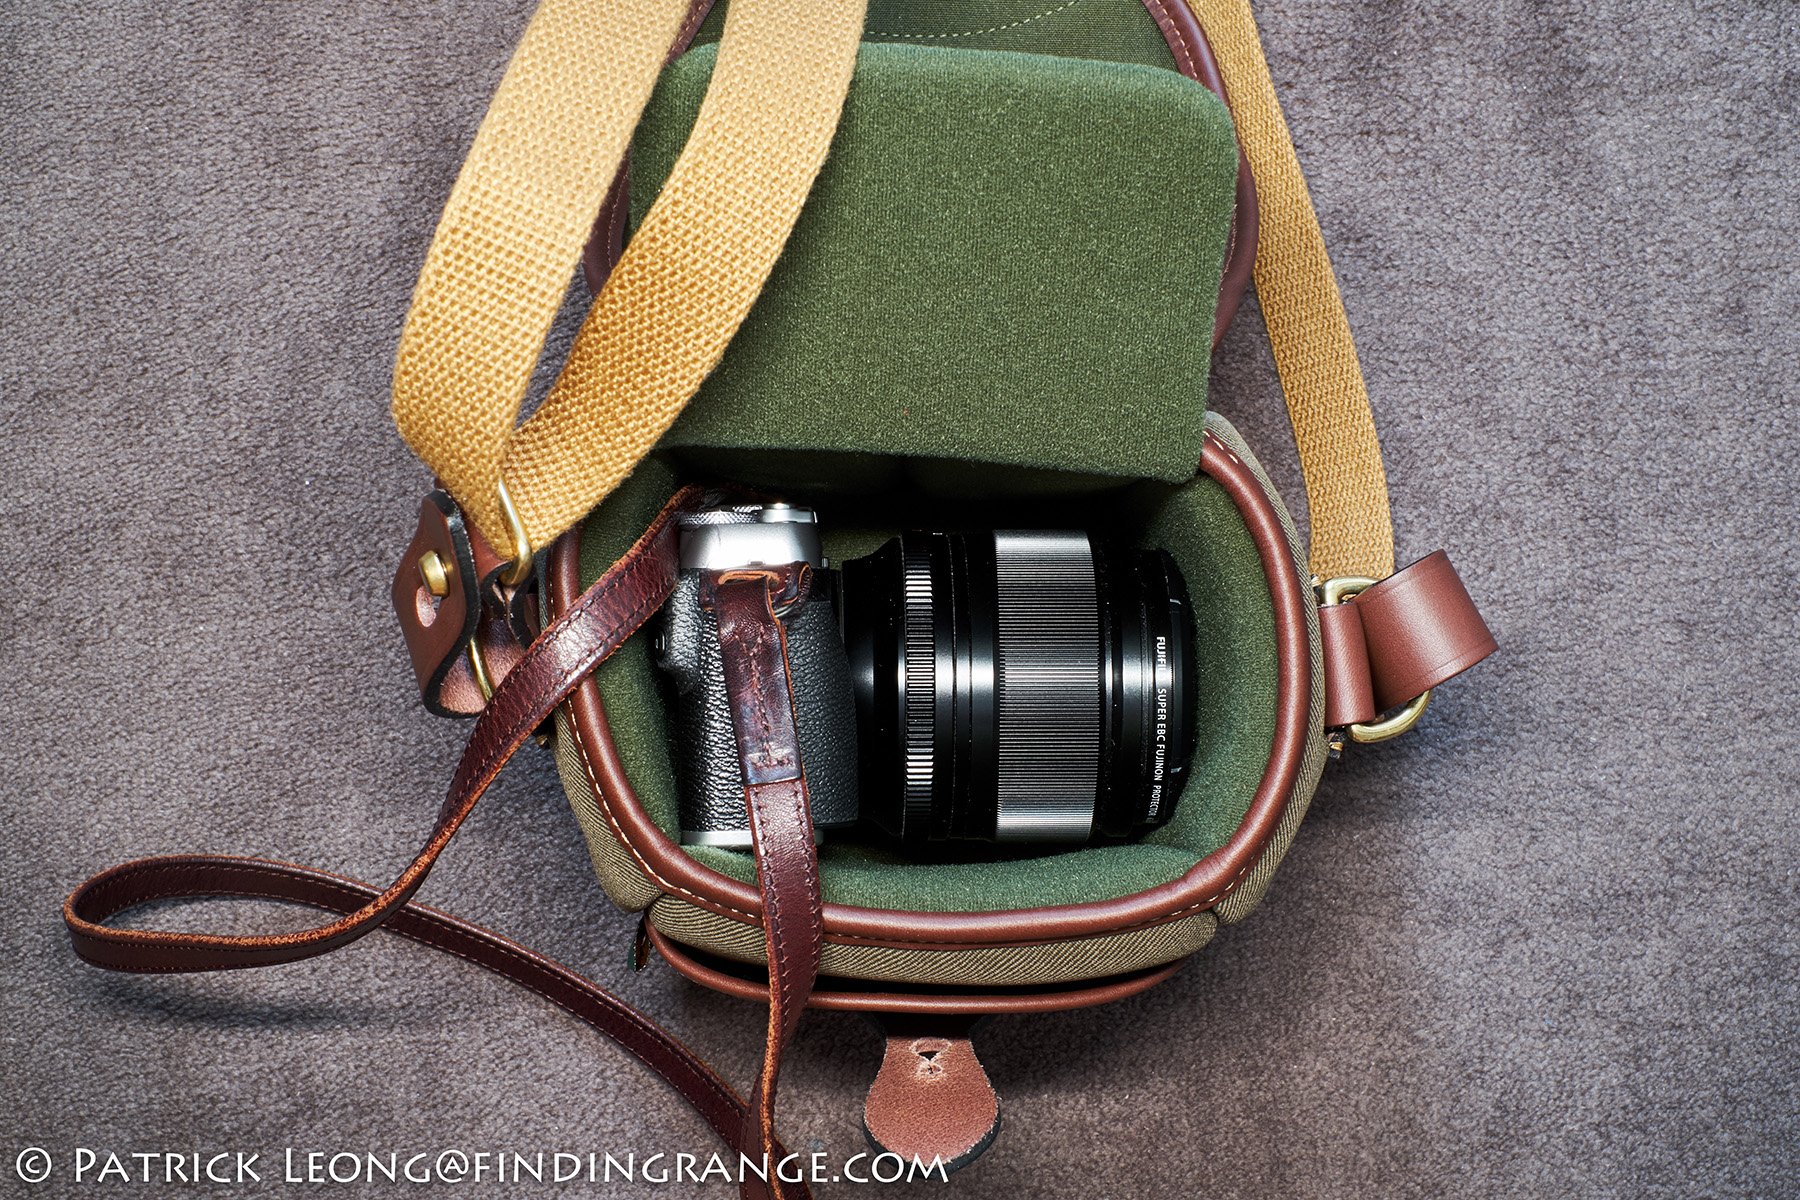 Billingham 72 Camera Bag Review Digital Burgundy Canvas Chocolate Leather I Also Have The Divider In Here Fuji X E3 With Massive Xf 56mm F12 Apd Attached